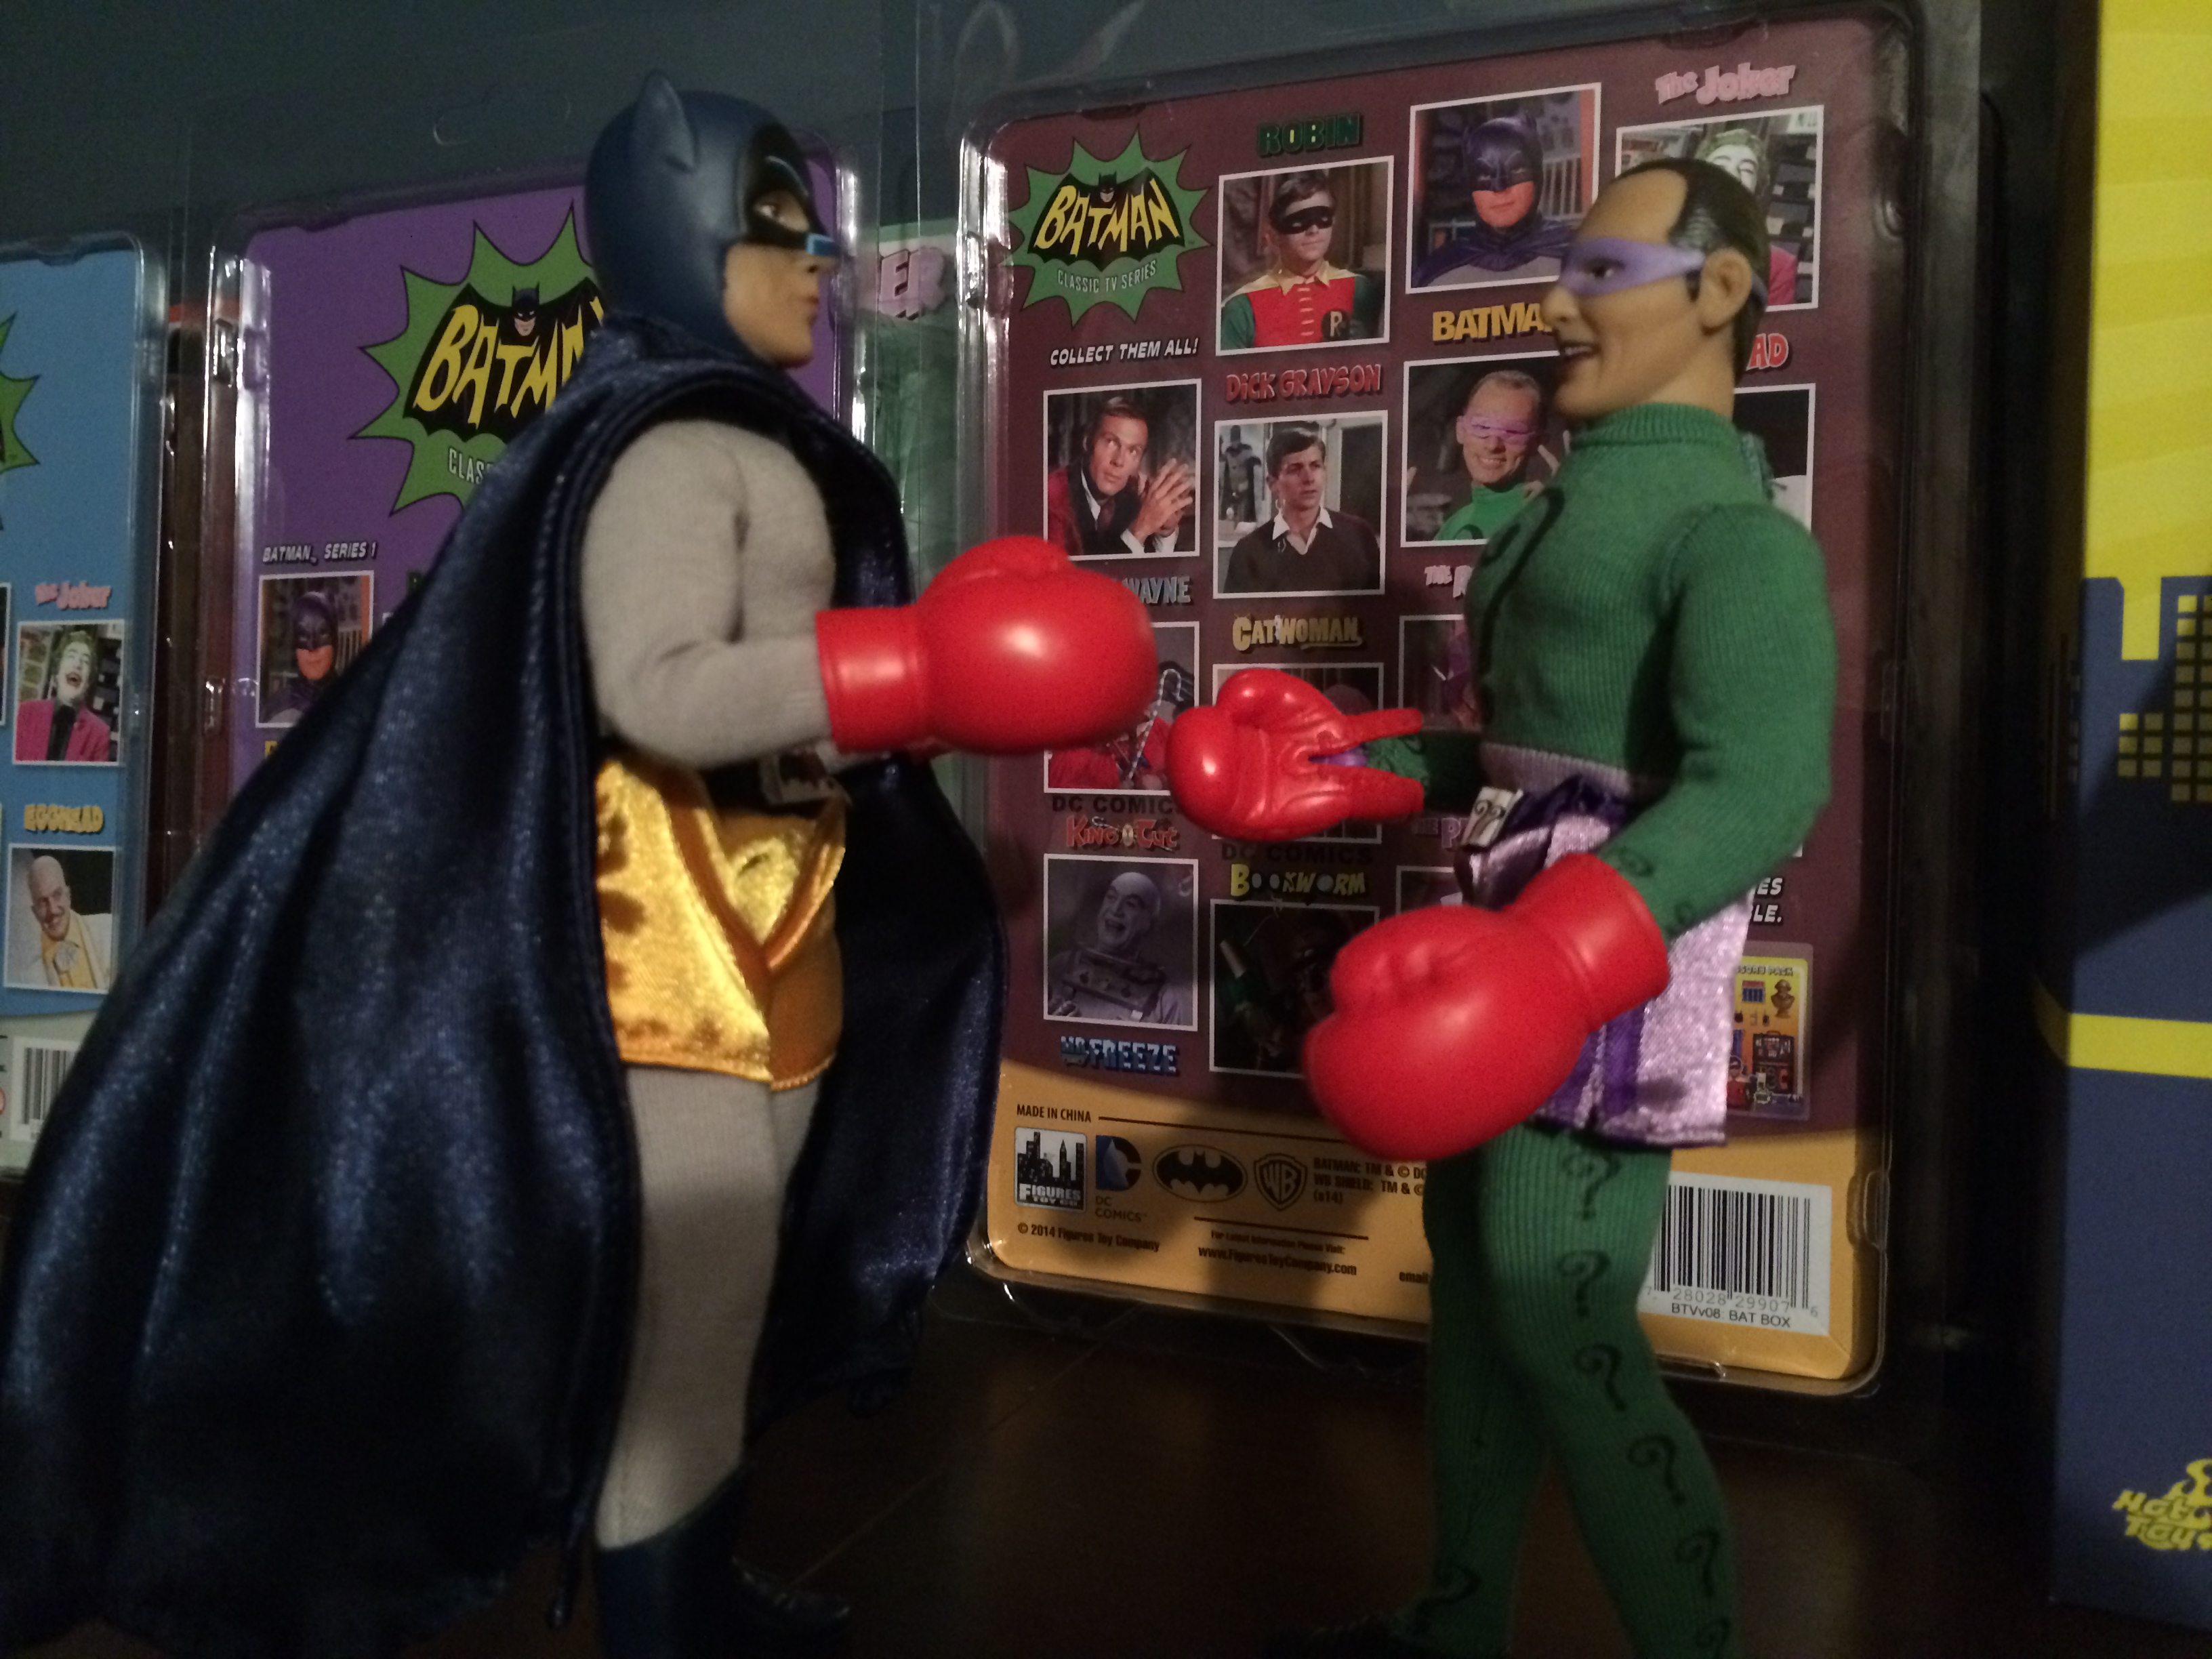 Batman vs. The Riddler